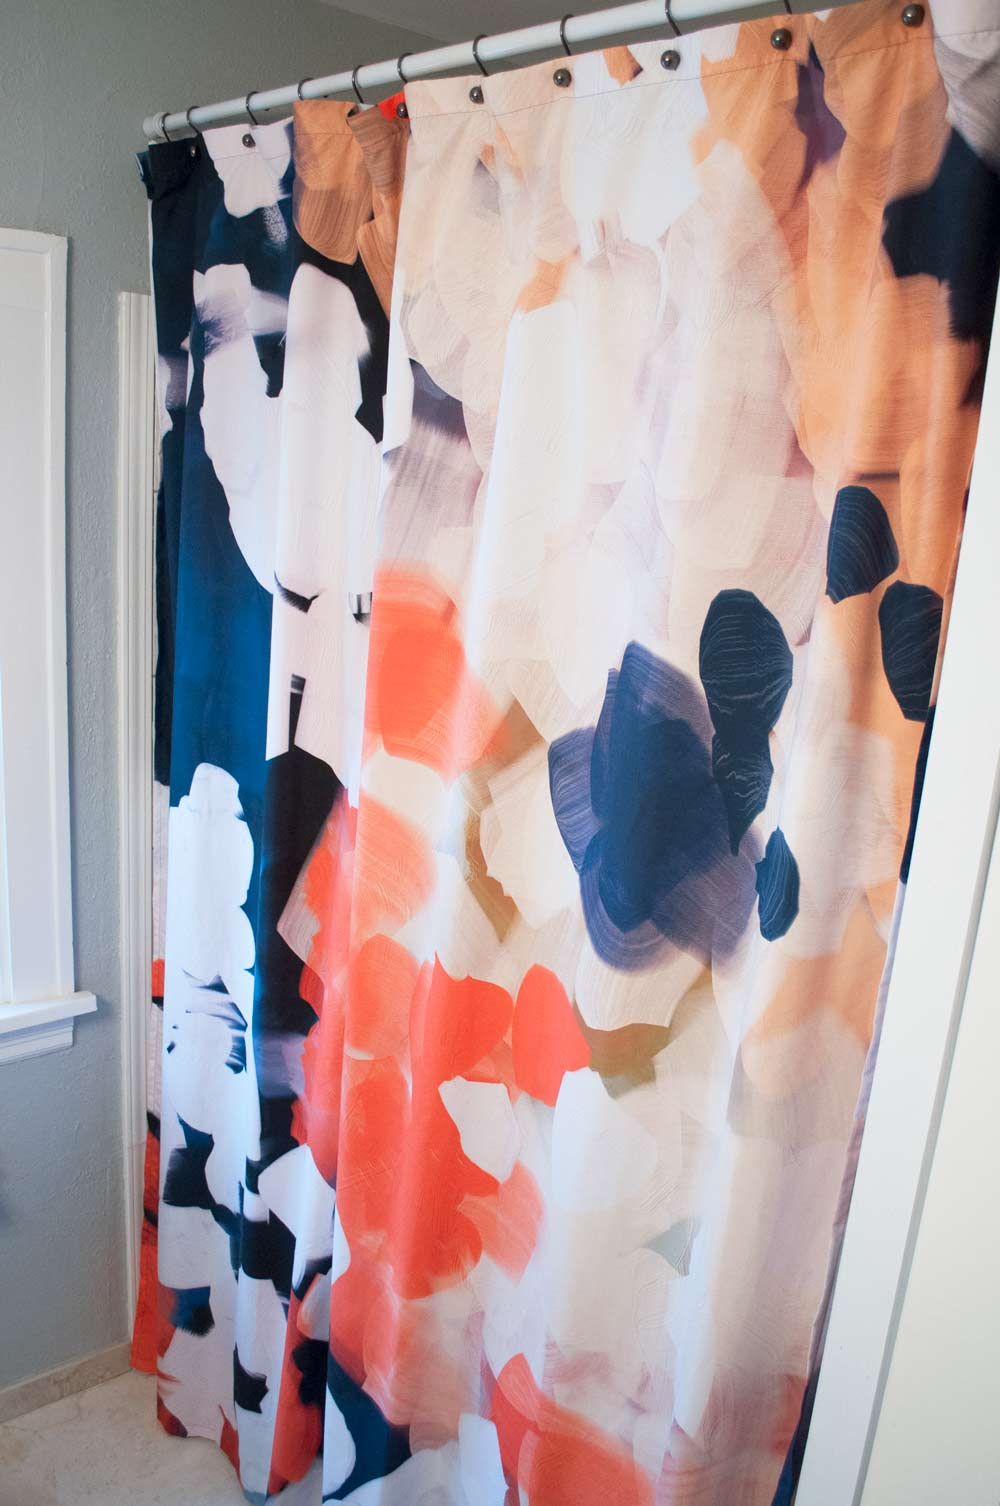 Turning A Society6 Tapestry Into A DIY Extra Long Shower Curtain And Then We Tried